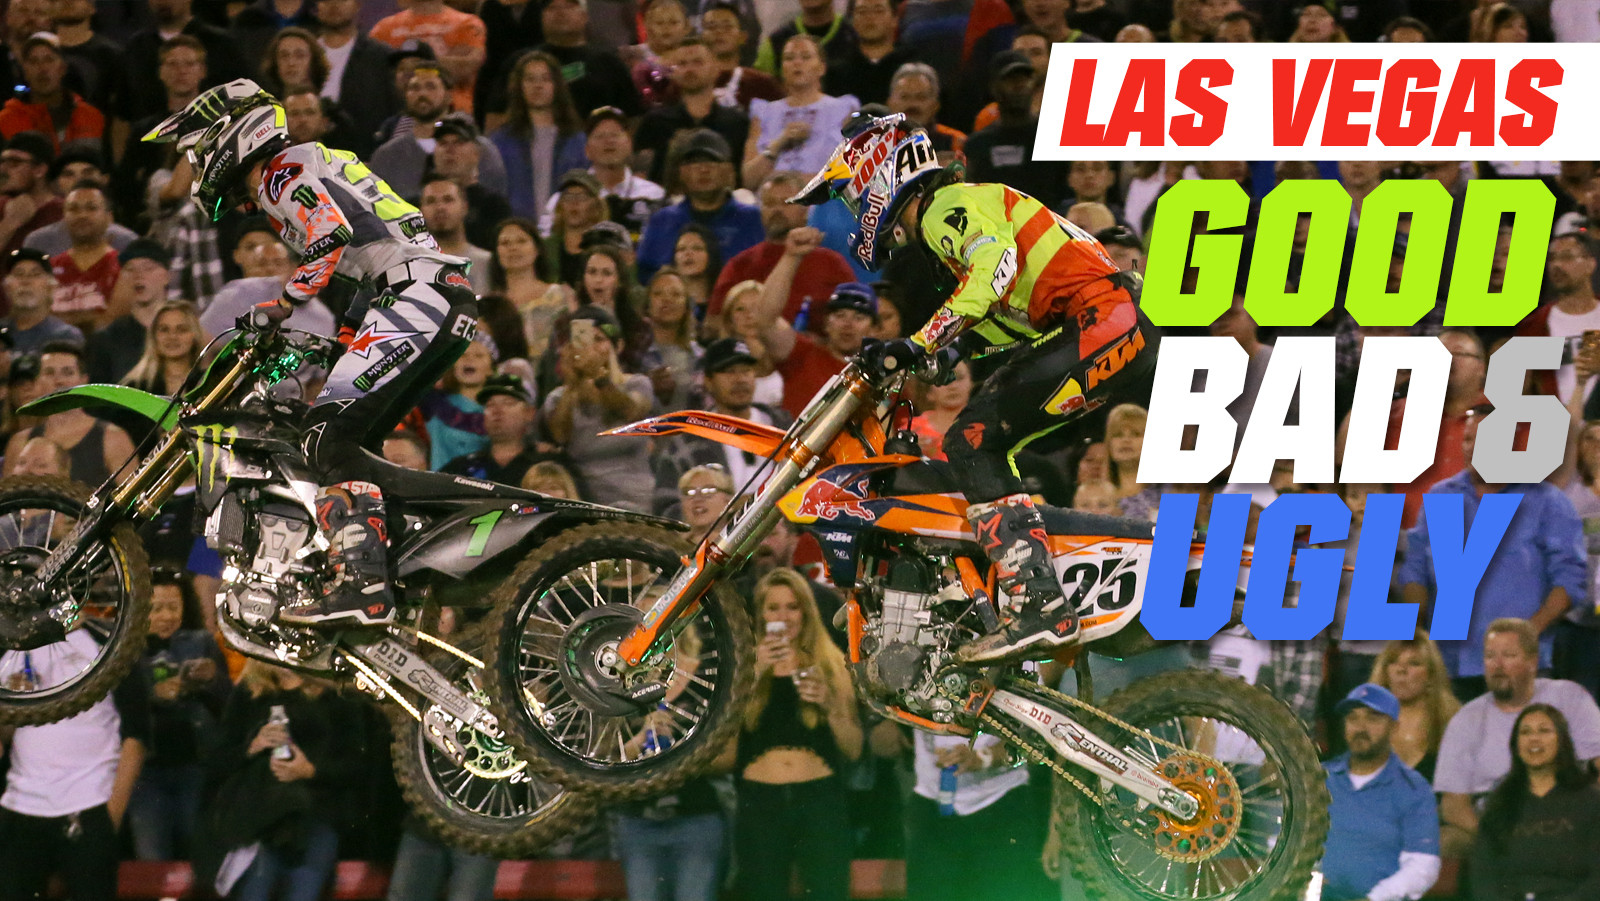 Monster Energy Cup - The Good, the Bad, and the Ugly